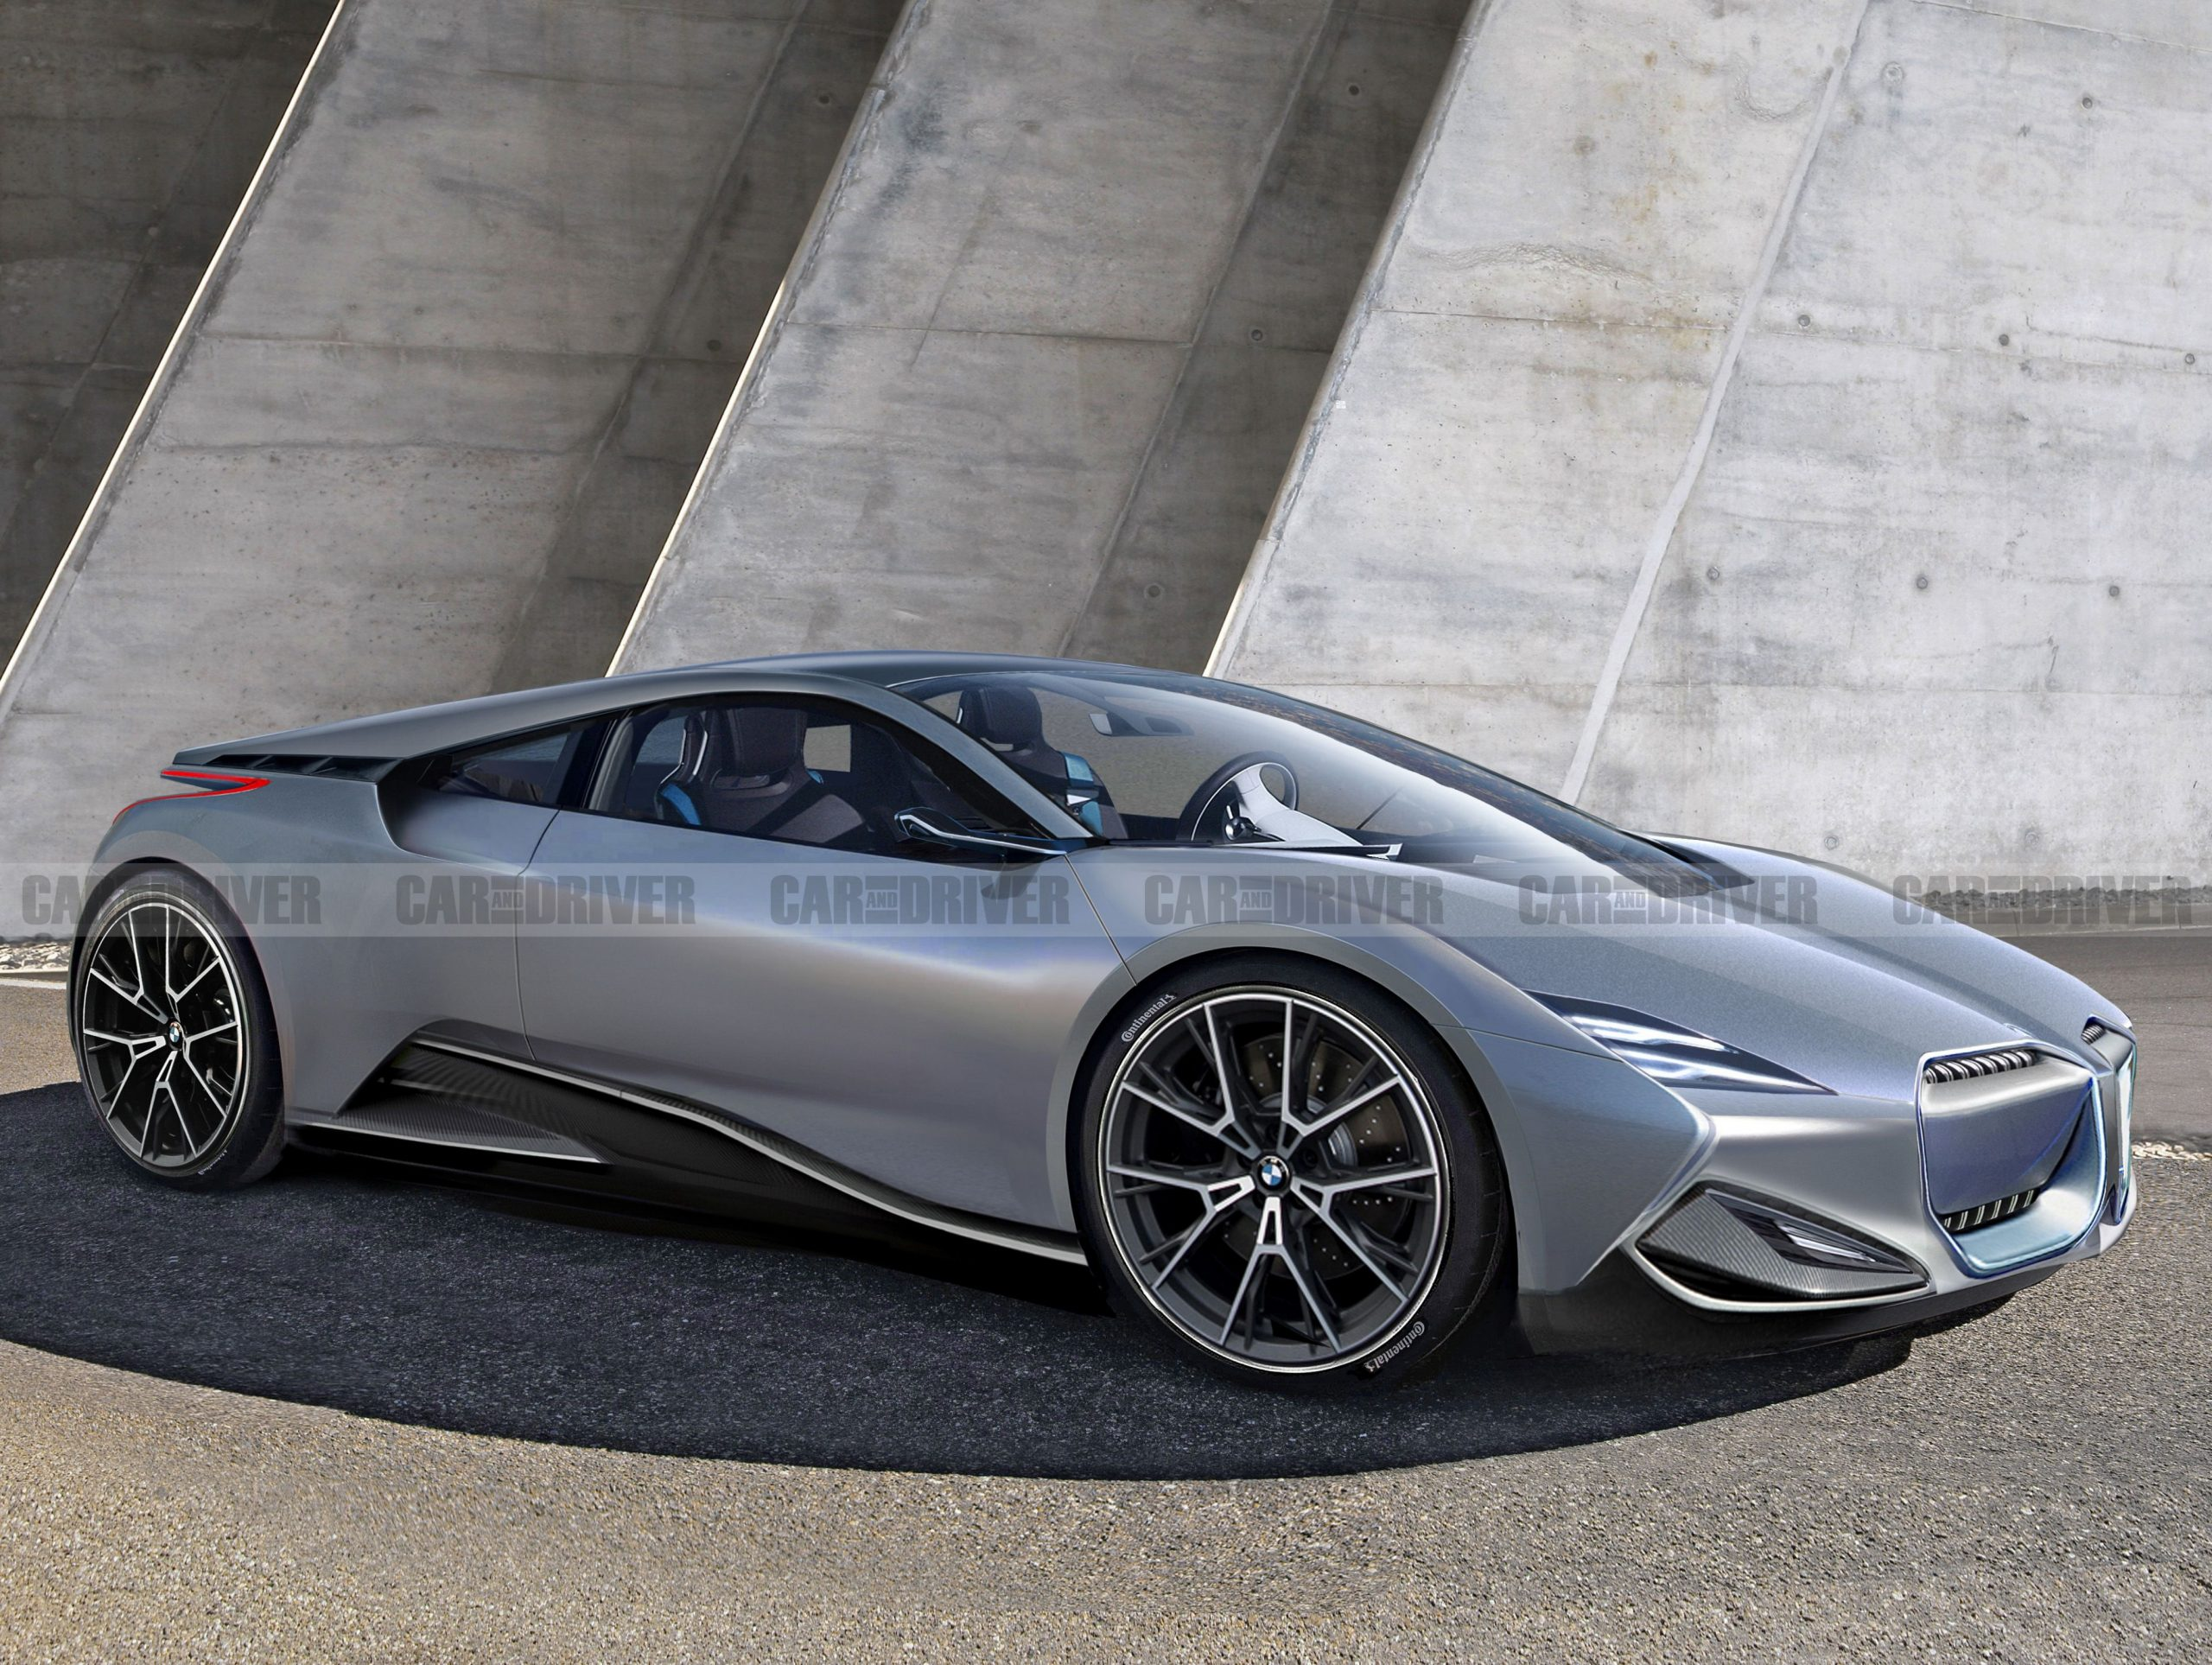 Future Cars Worth Waiting For: 3-3